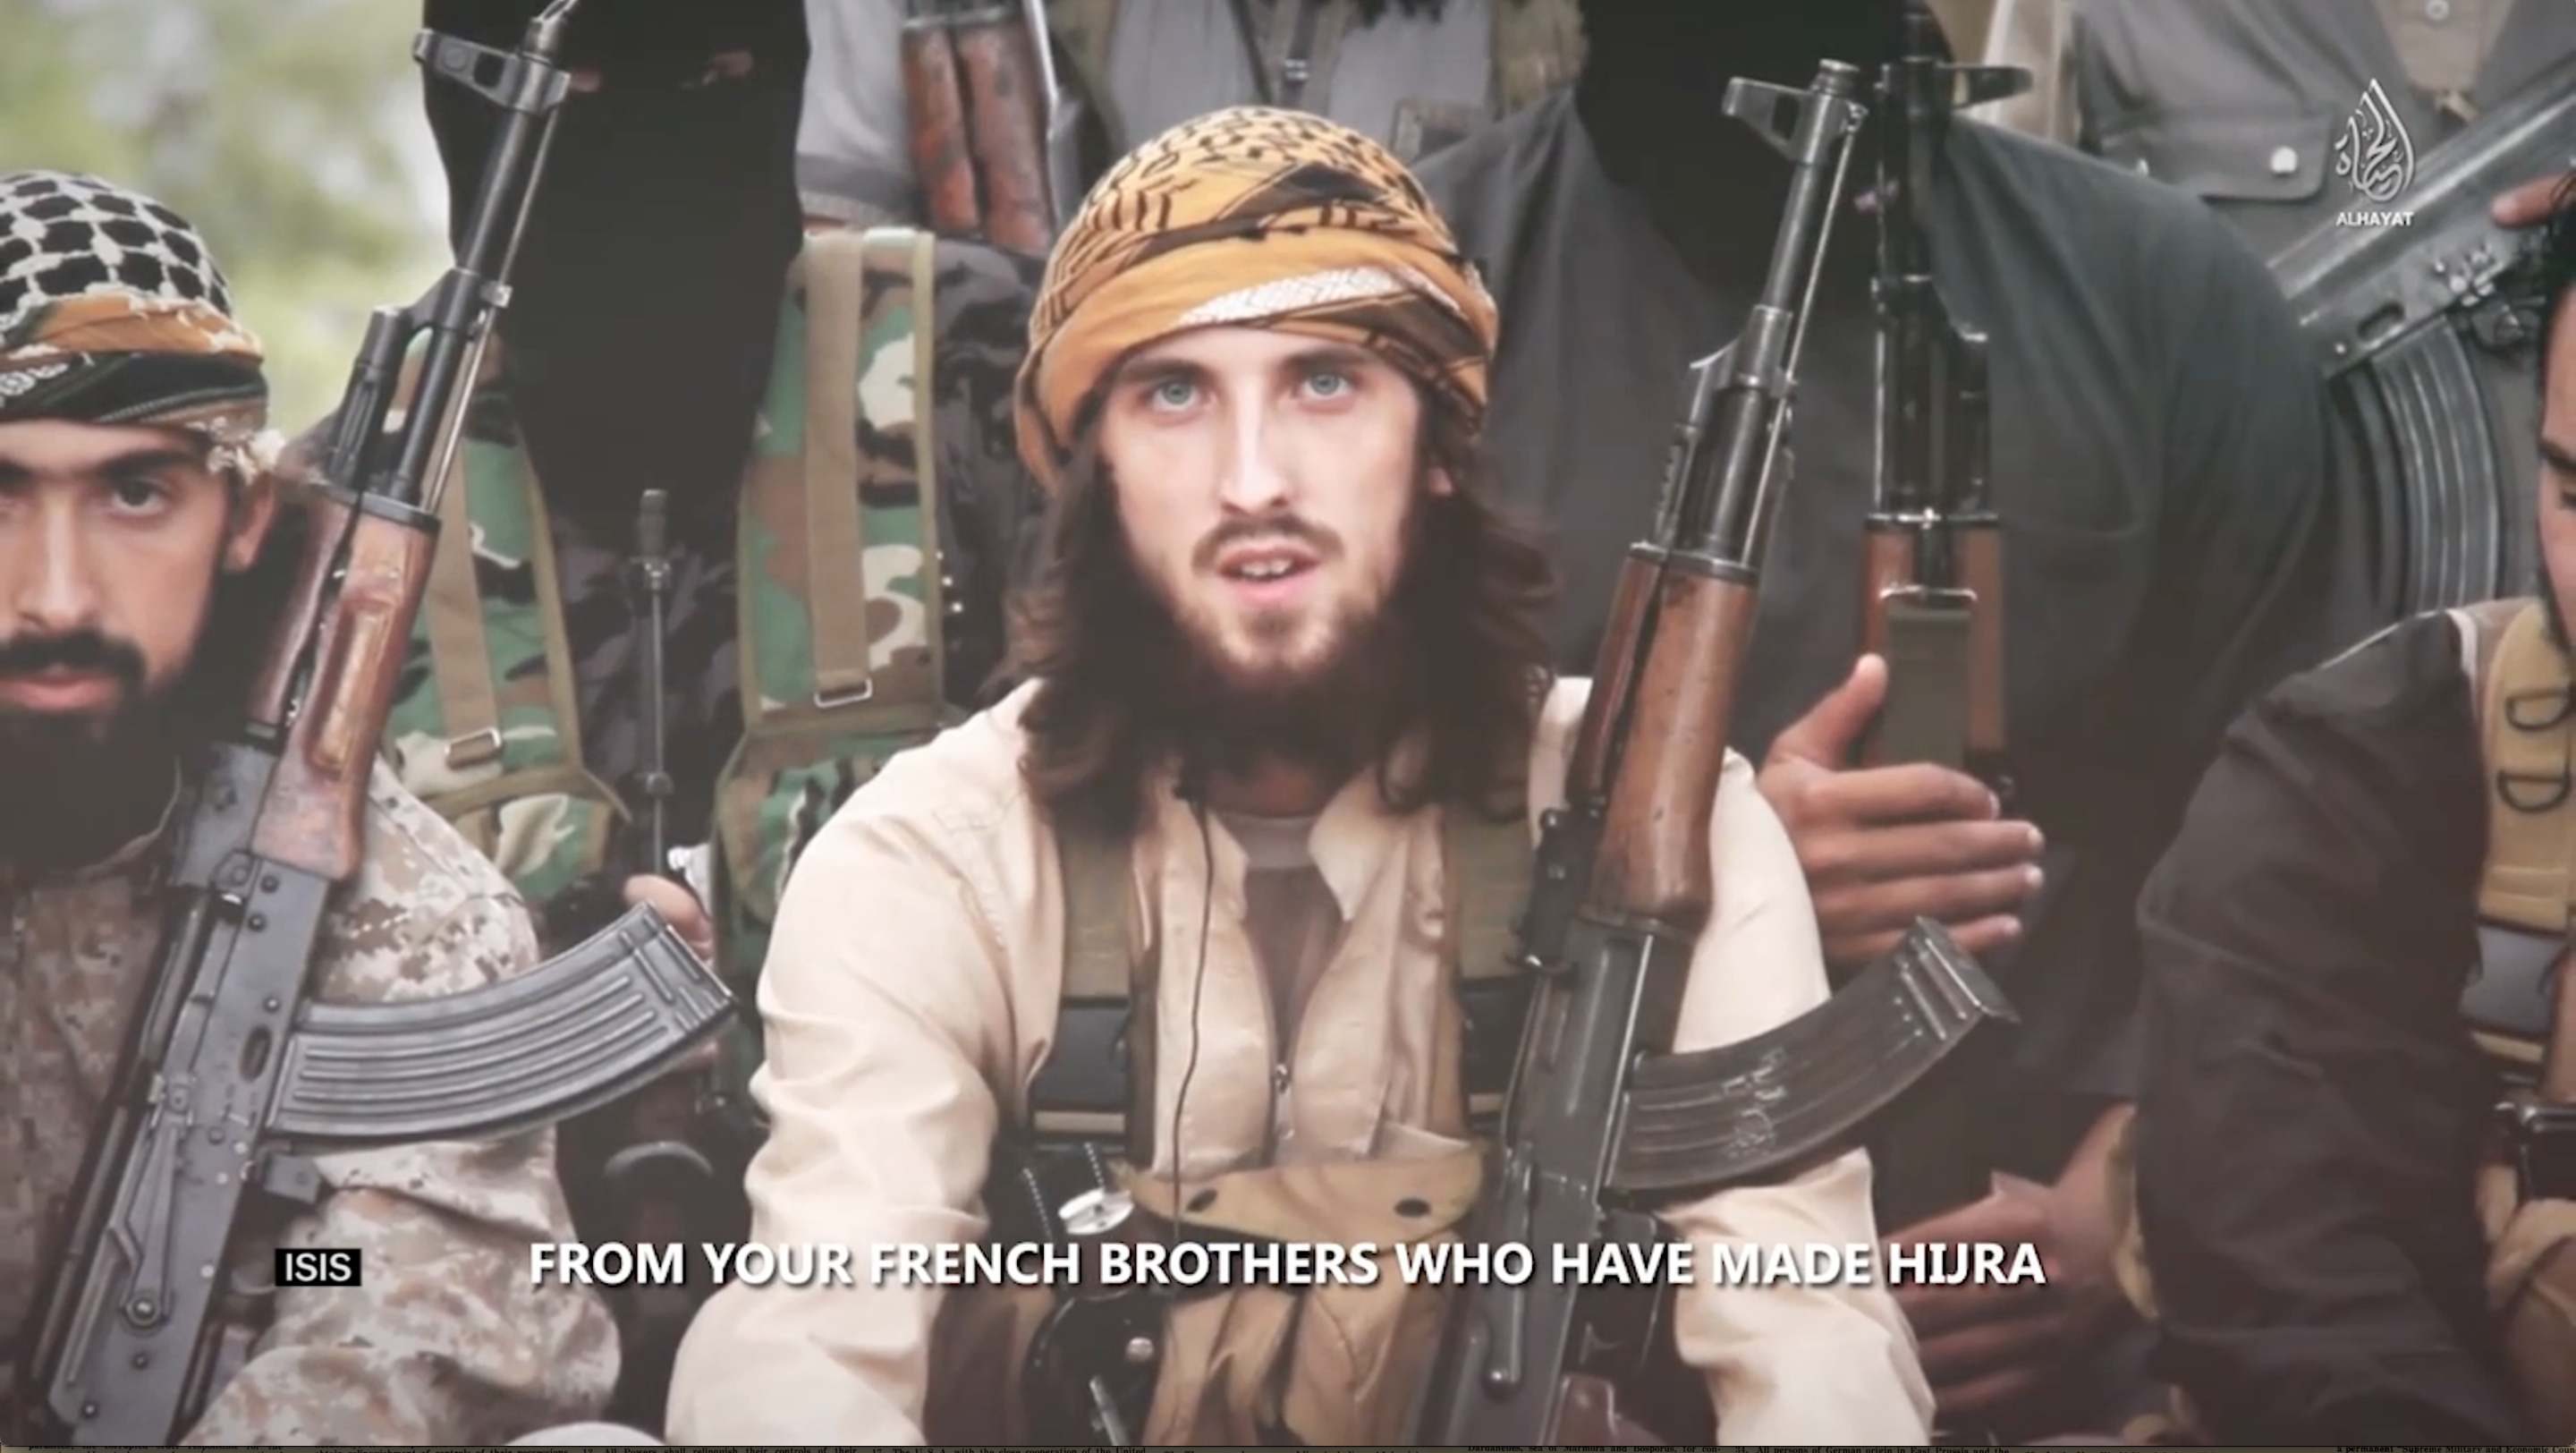 These leaked records cast light on how ISIS makes its money